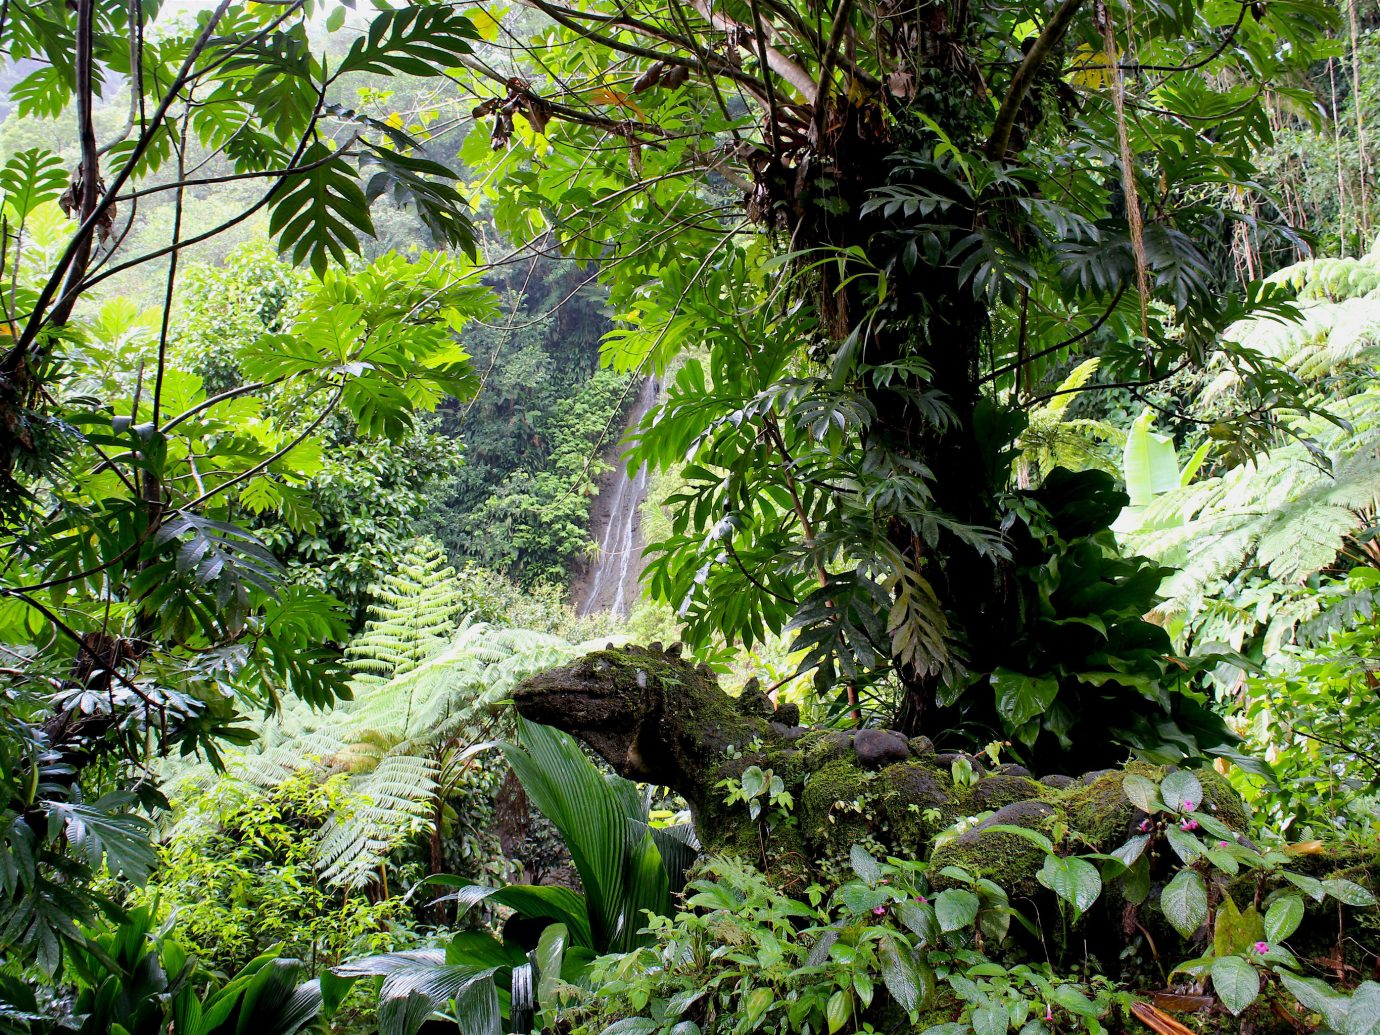 Trip Ideas tree outdoor habitat vegetation Nature rainforest plant natural environment Forest green woodland flora wilderness old growth forest ecosystem botany Jungle leaf branch Garden flower tropics stream sunlight biome water feature lined lush